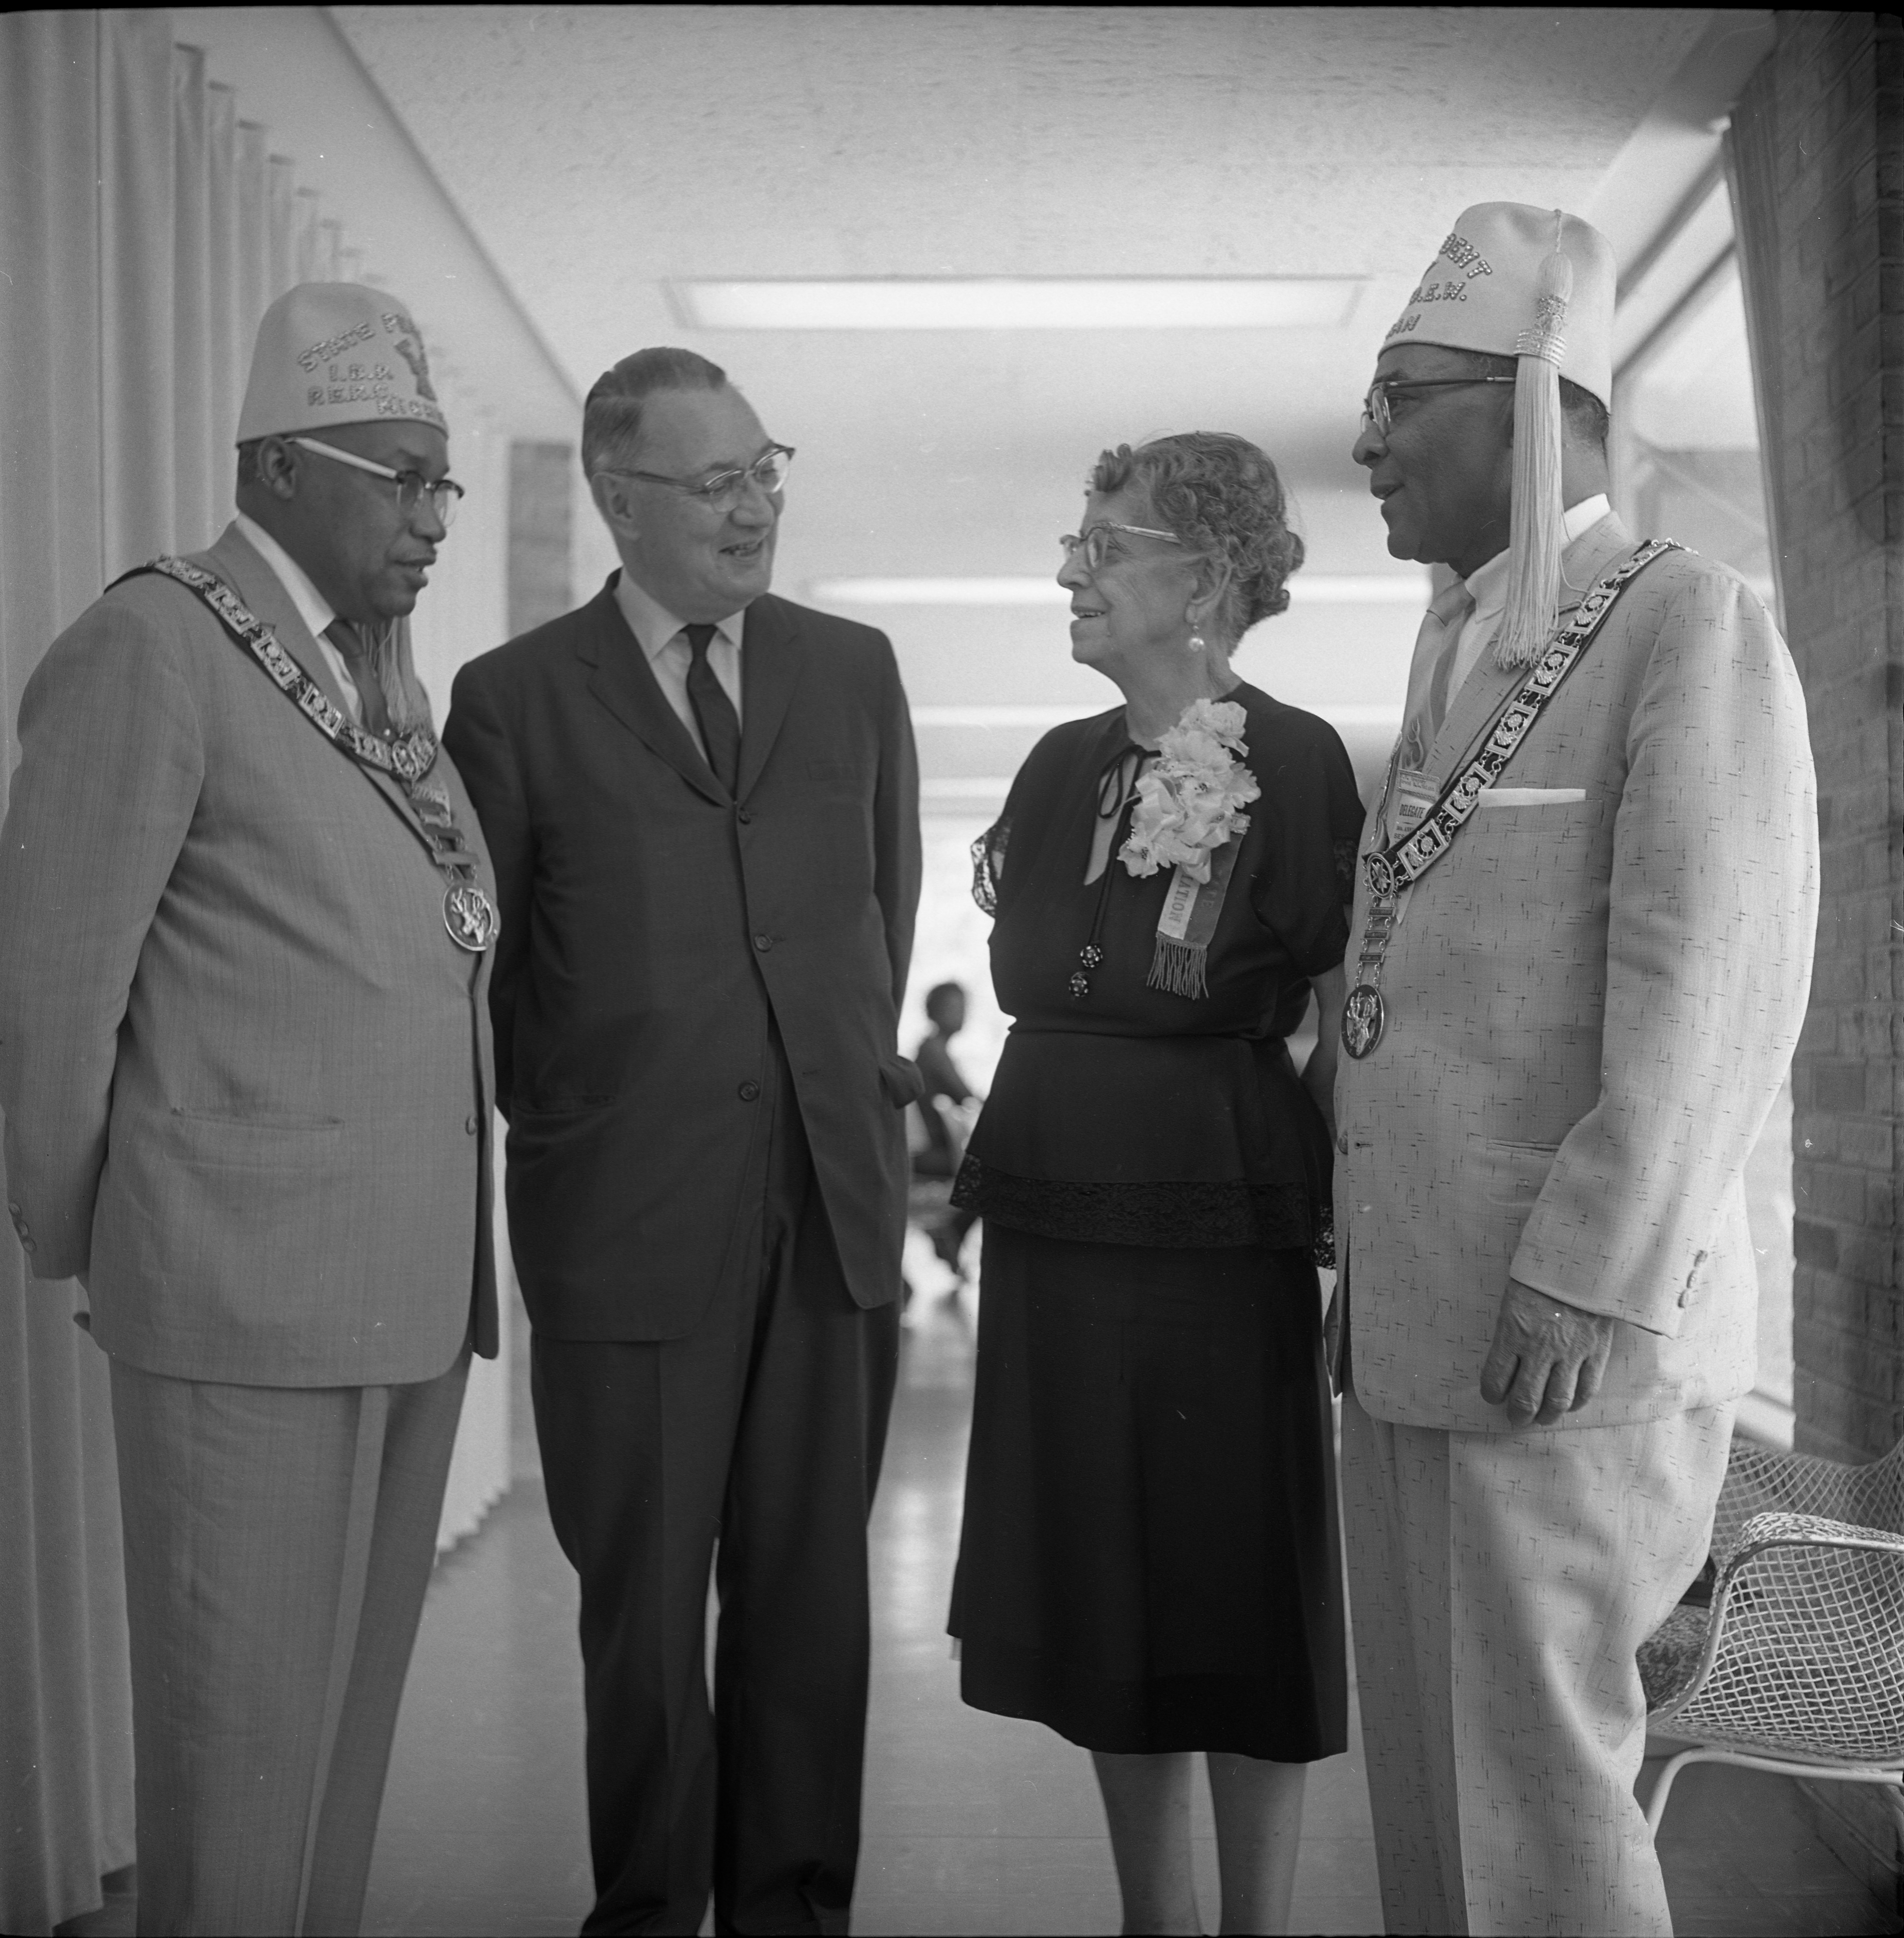 Mayor Cecil O. Creal Meets With Elks Convention Delegates John H. Burns, Grace Bryant, & Bertram V. Gregory, June 23, 1962 image